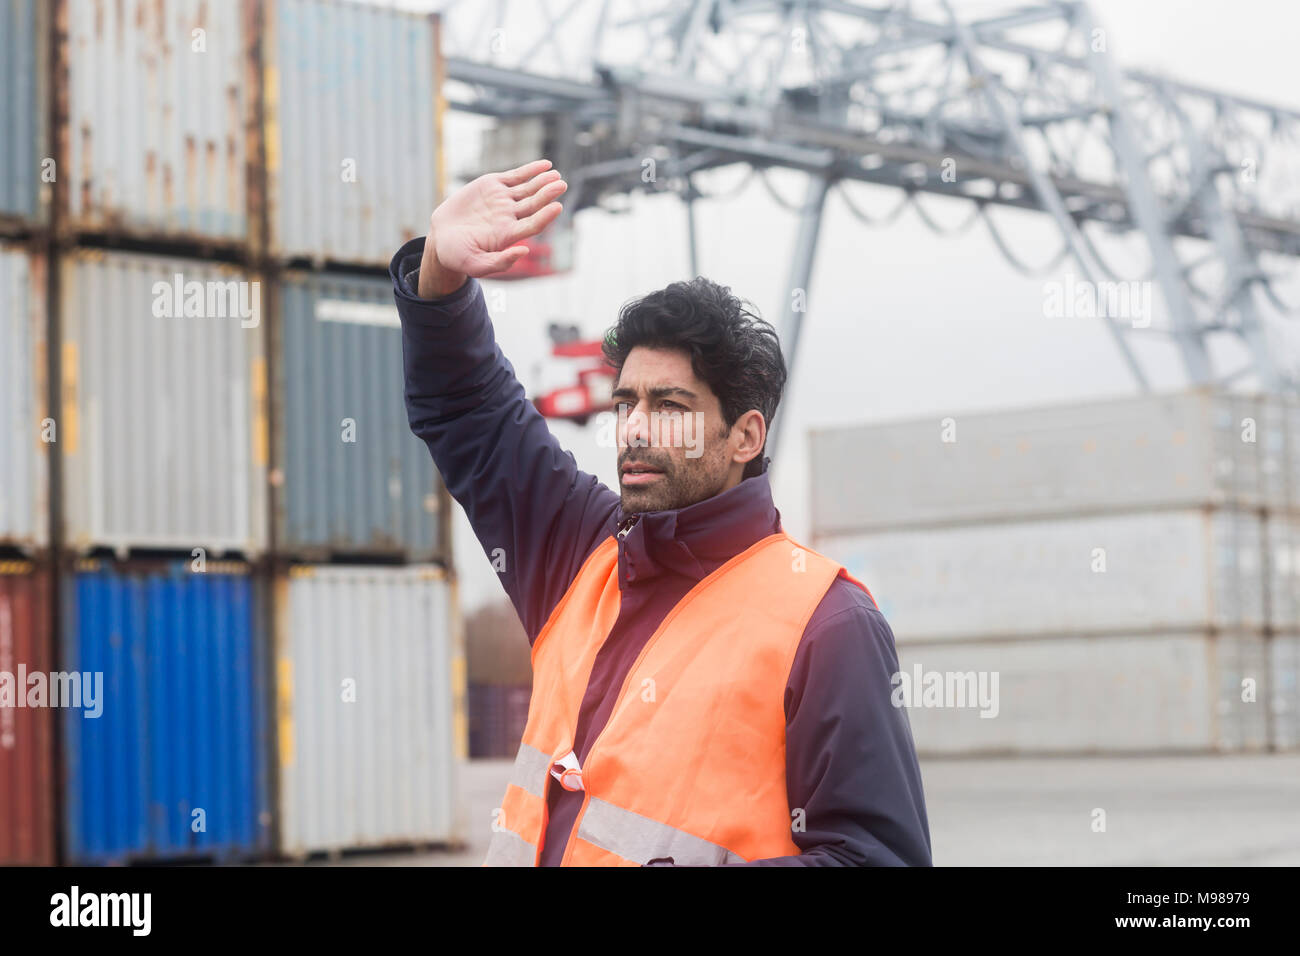 Man wearing reflective vest working at container port - Stock Image